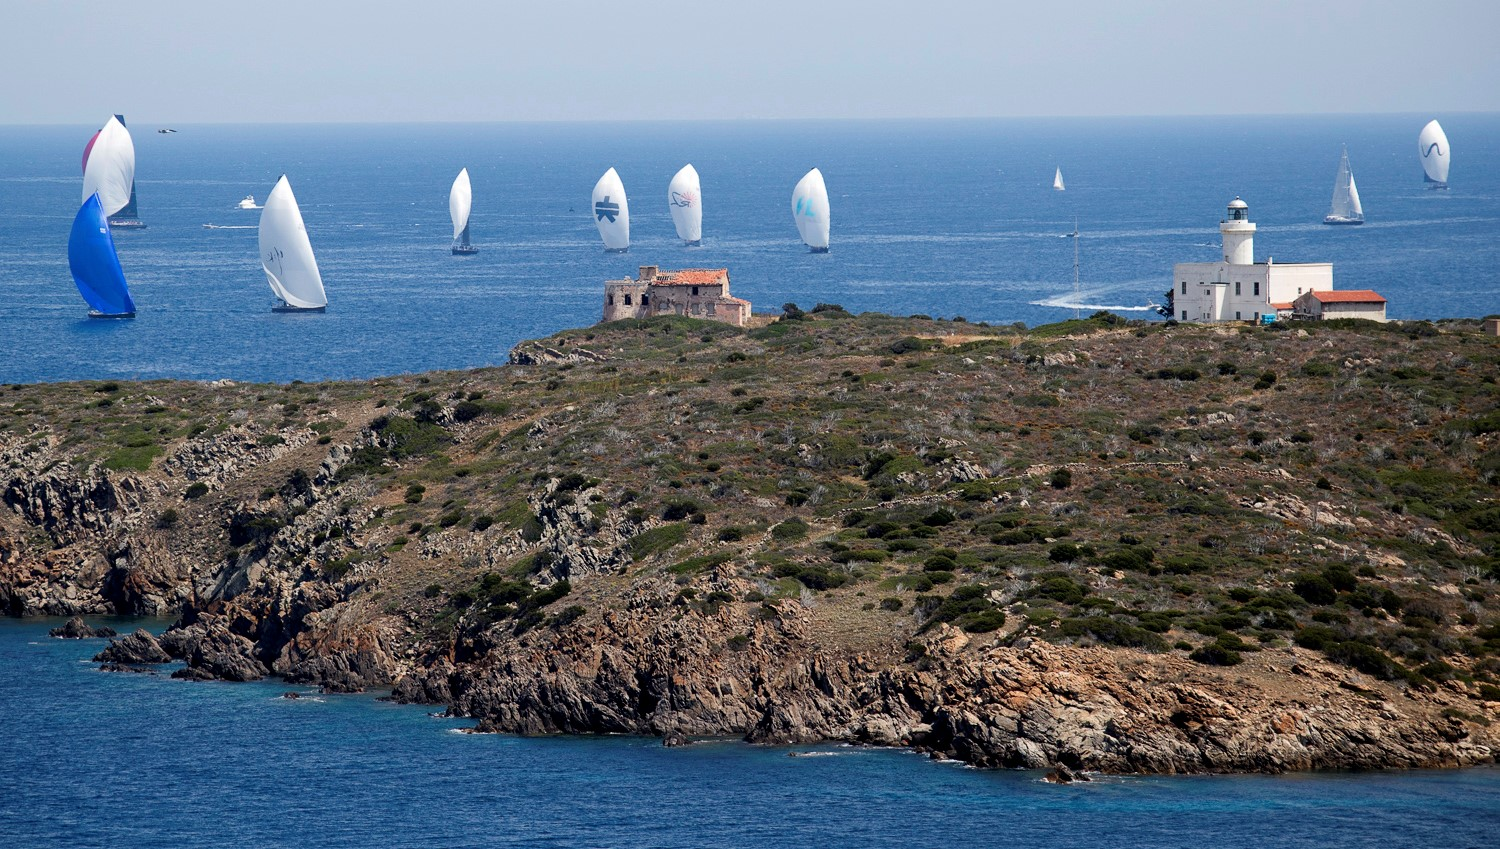 Loro Piana Superyacht Regatta begins tomorrow in Porto Cervo  - NEWS - Yacht Club Costa Smeralda